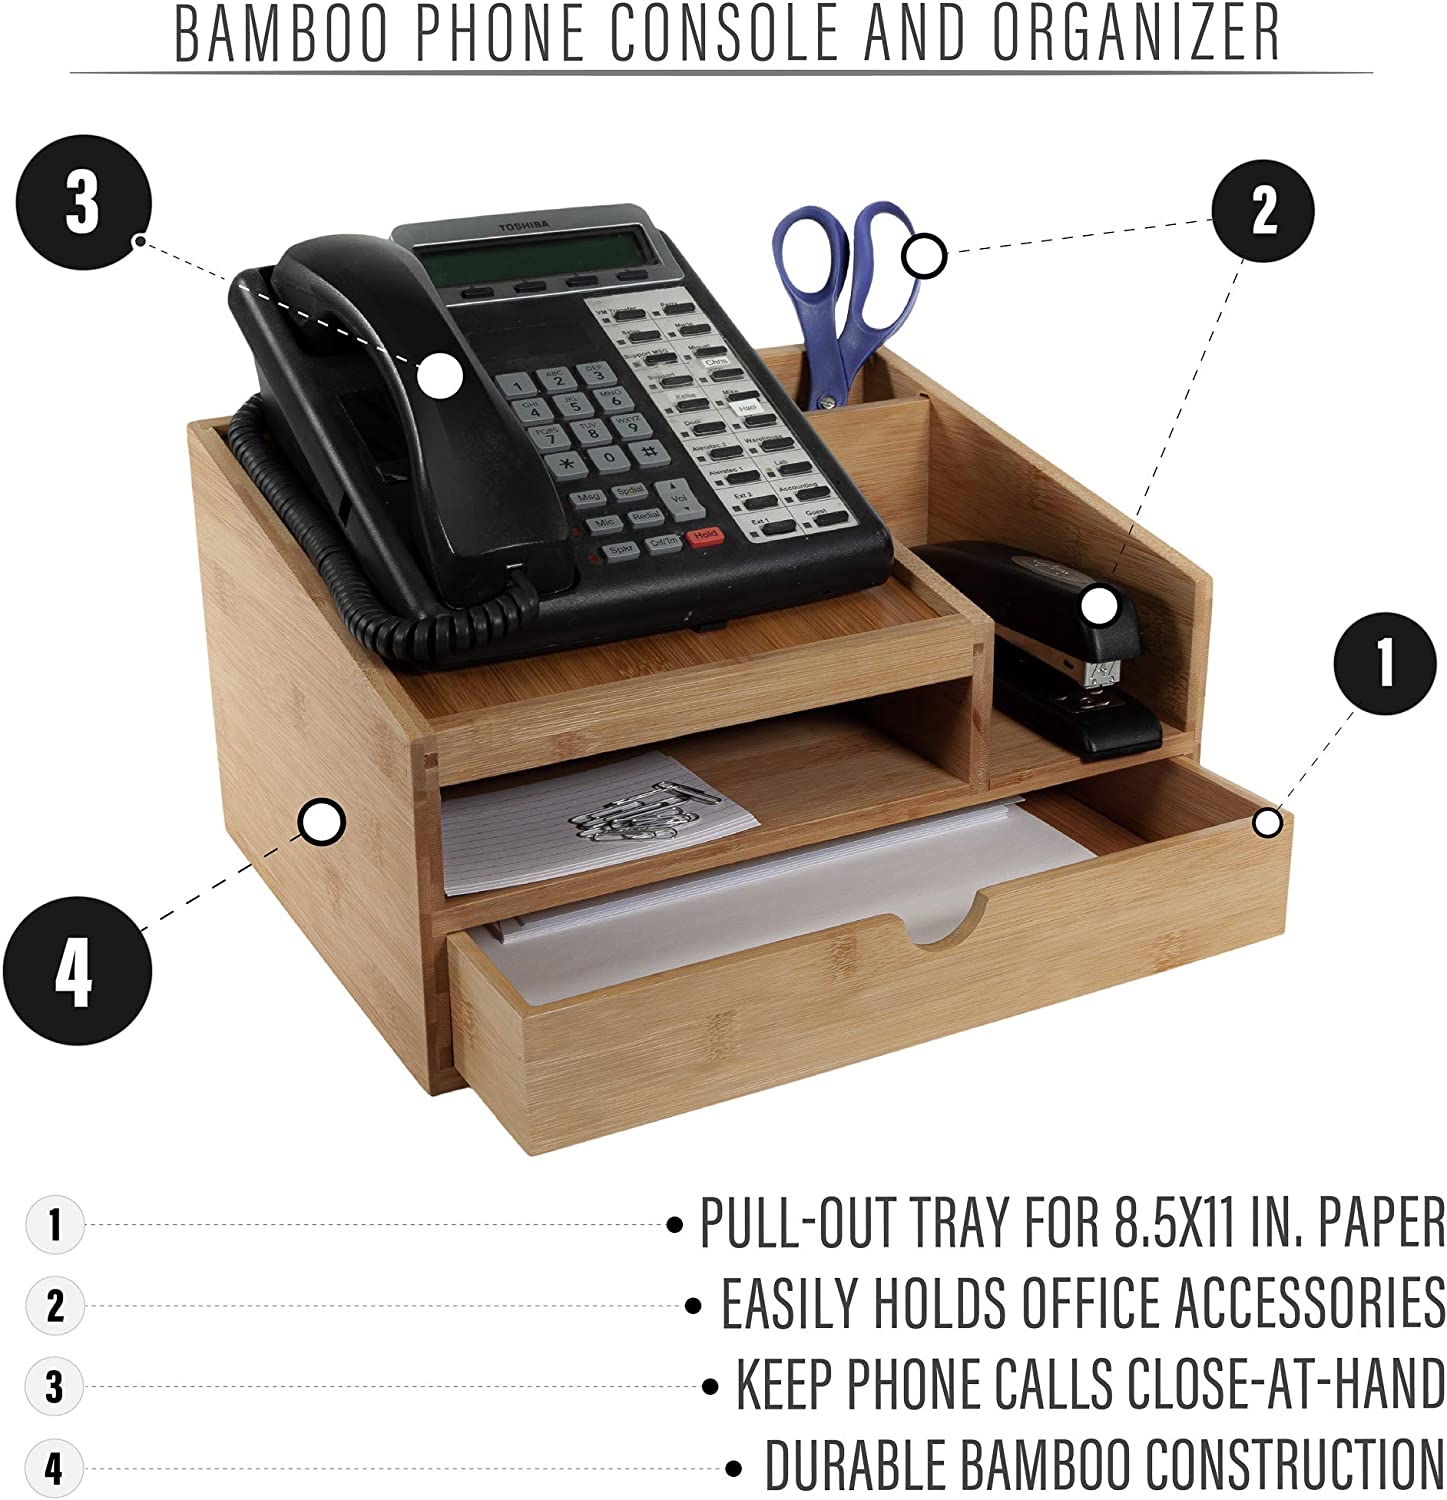 Prosumers Choice Bamboo Office Telephone Stand and Desk Organizer with Pull-Out Paper Tray